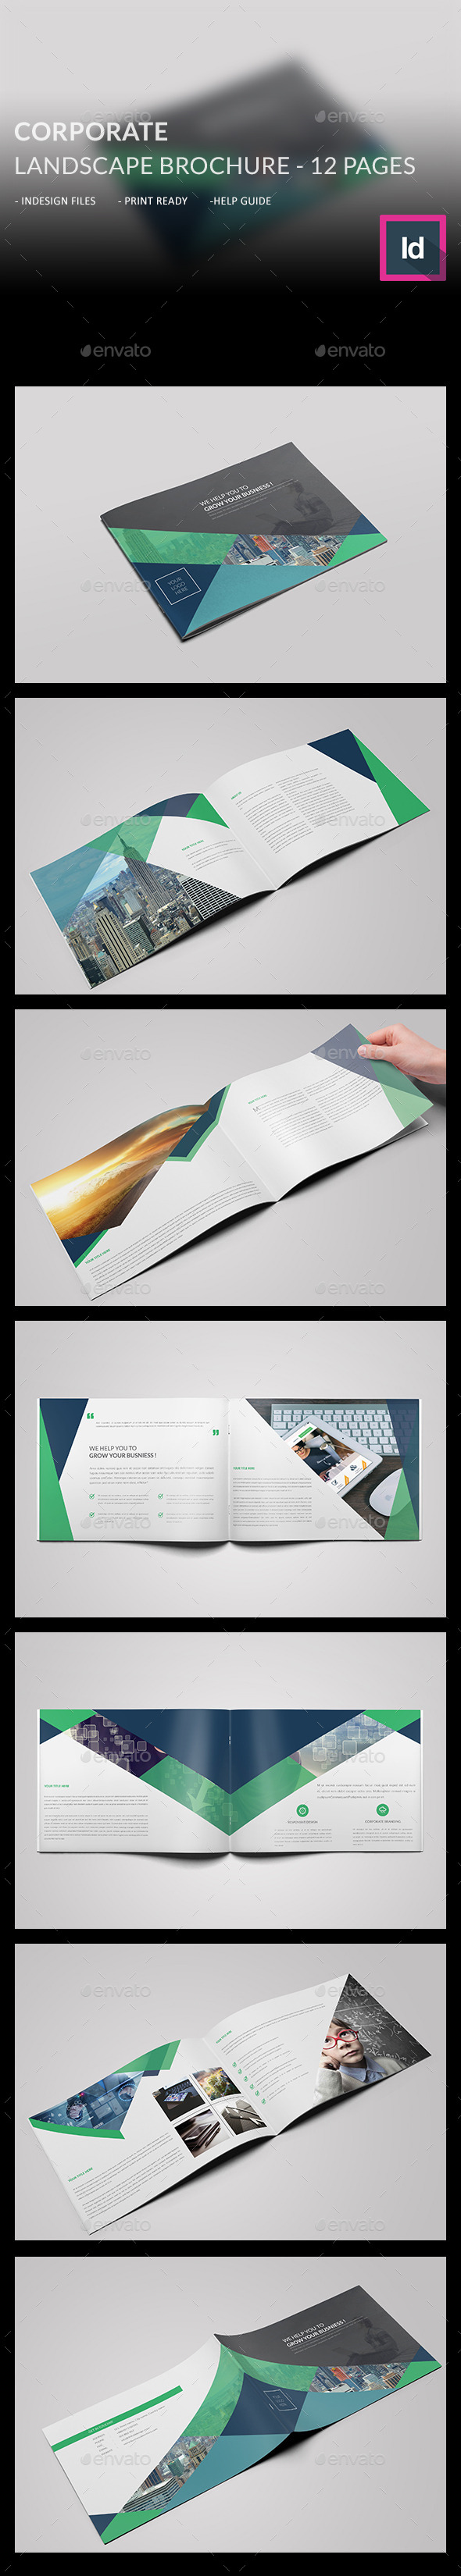 Corporate Landscape Brochure  - Brochures Print Templates